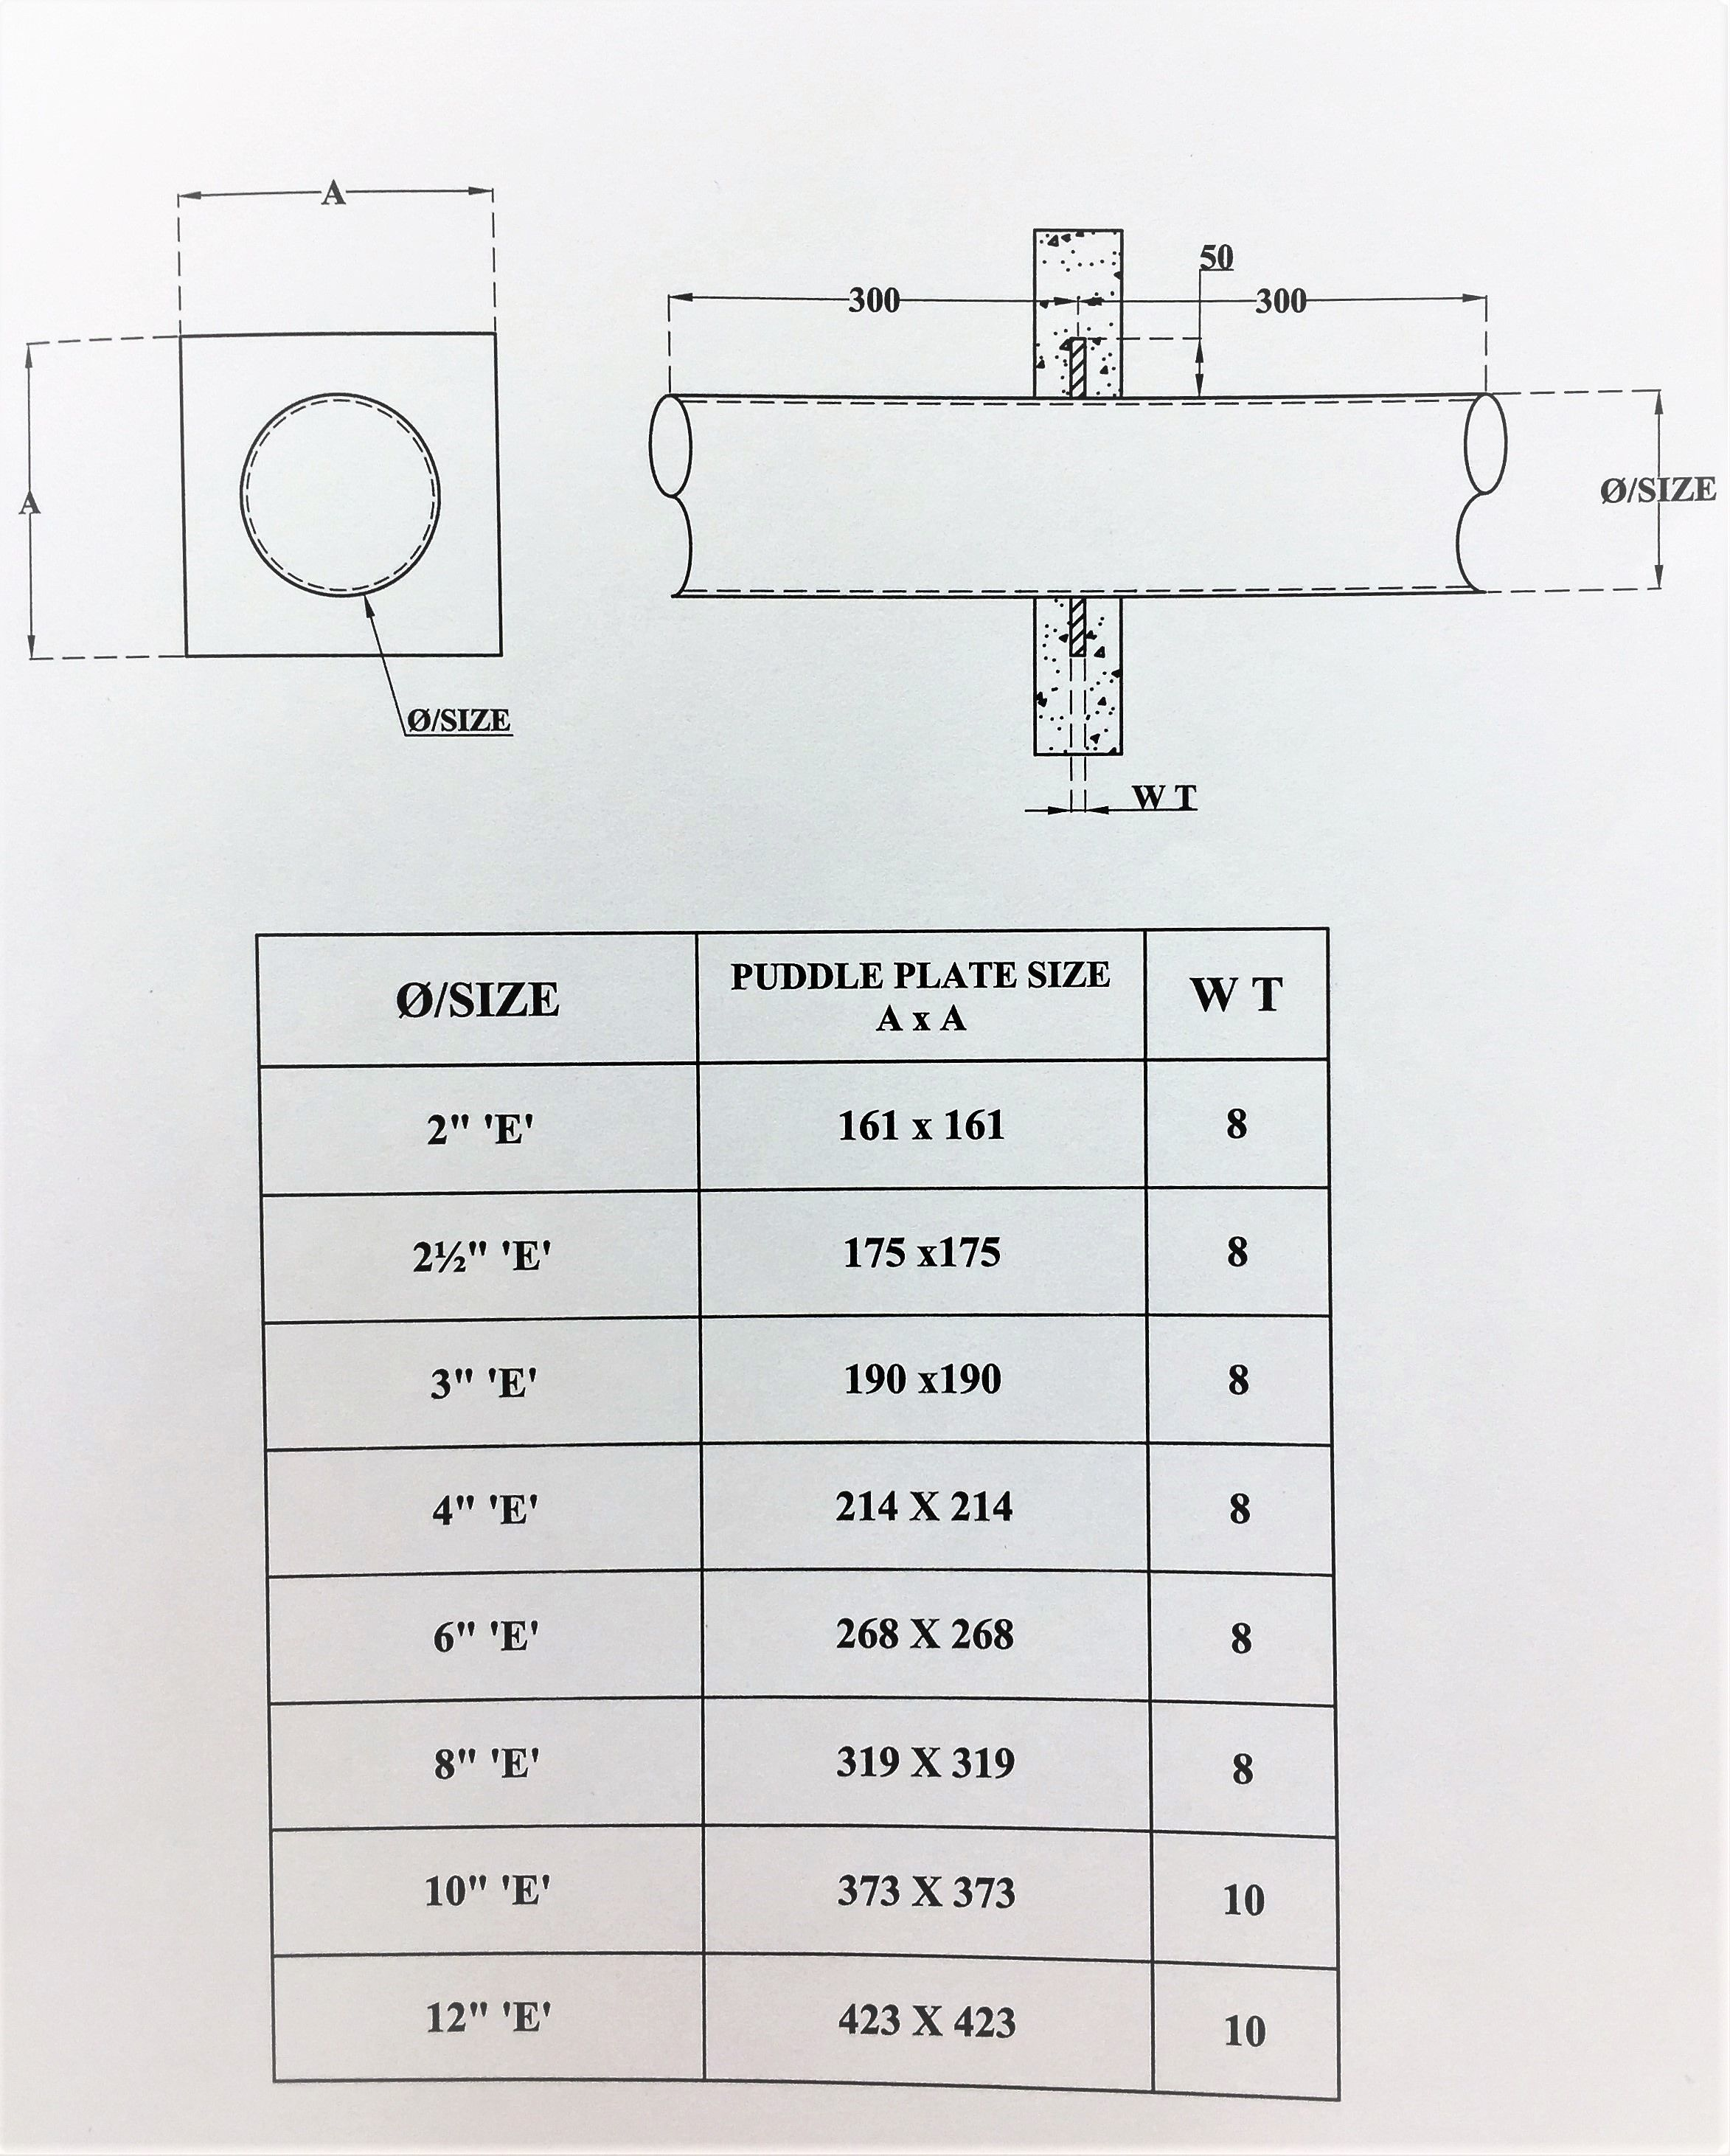 Sizing the Flange of the Puddle flange according pipe size